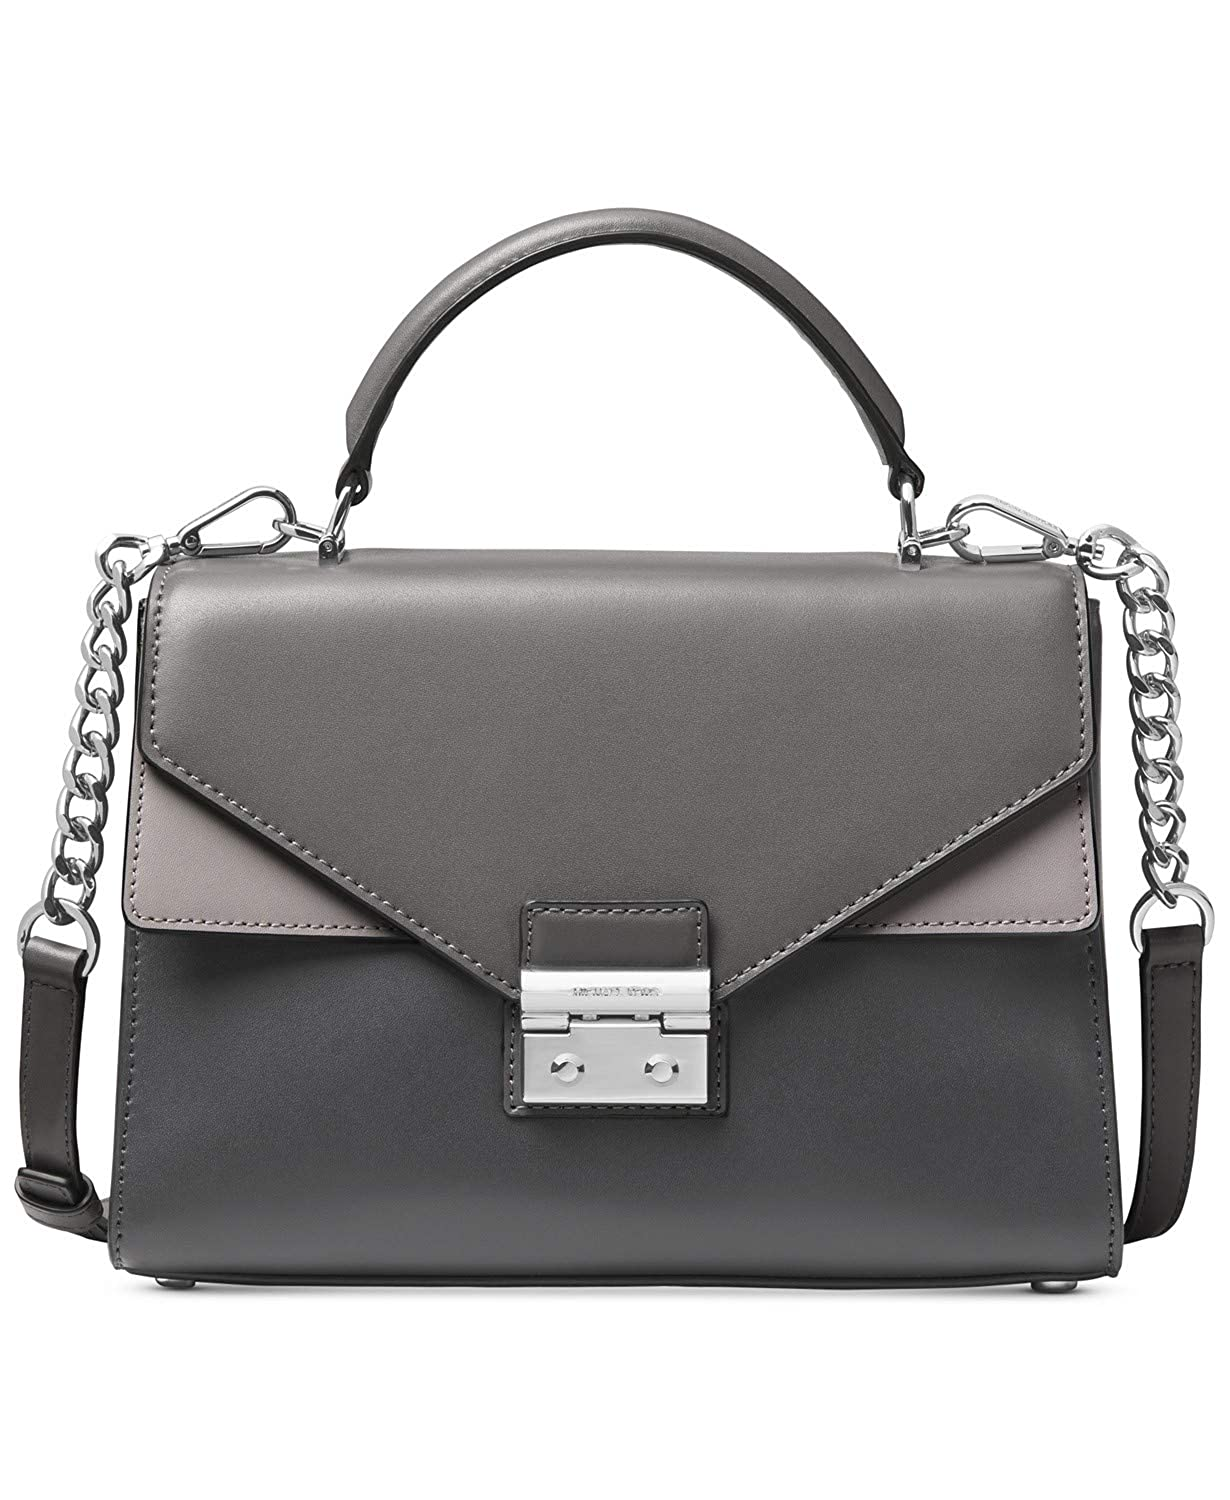 78e7d6ce504366 Michael Michael Kors Sloan Medium Double Flap Top Handle Leather Satchel  Charcoal Multi: Handbags: Amazon.com